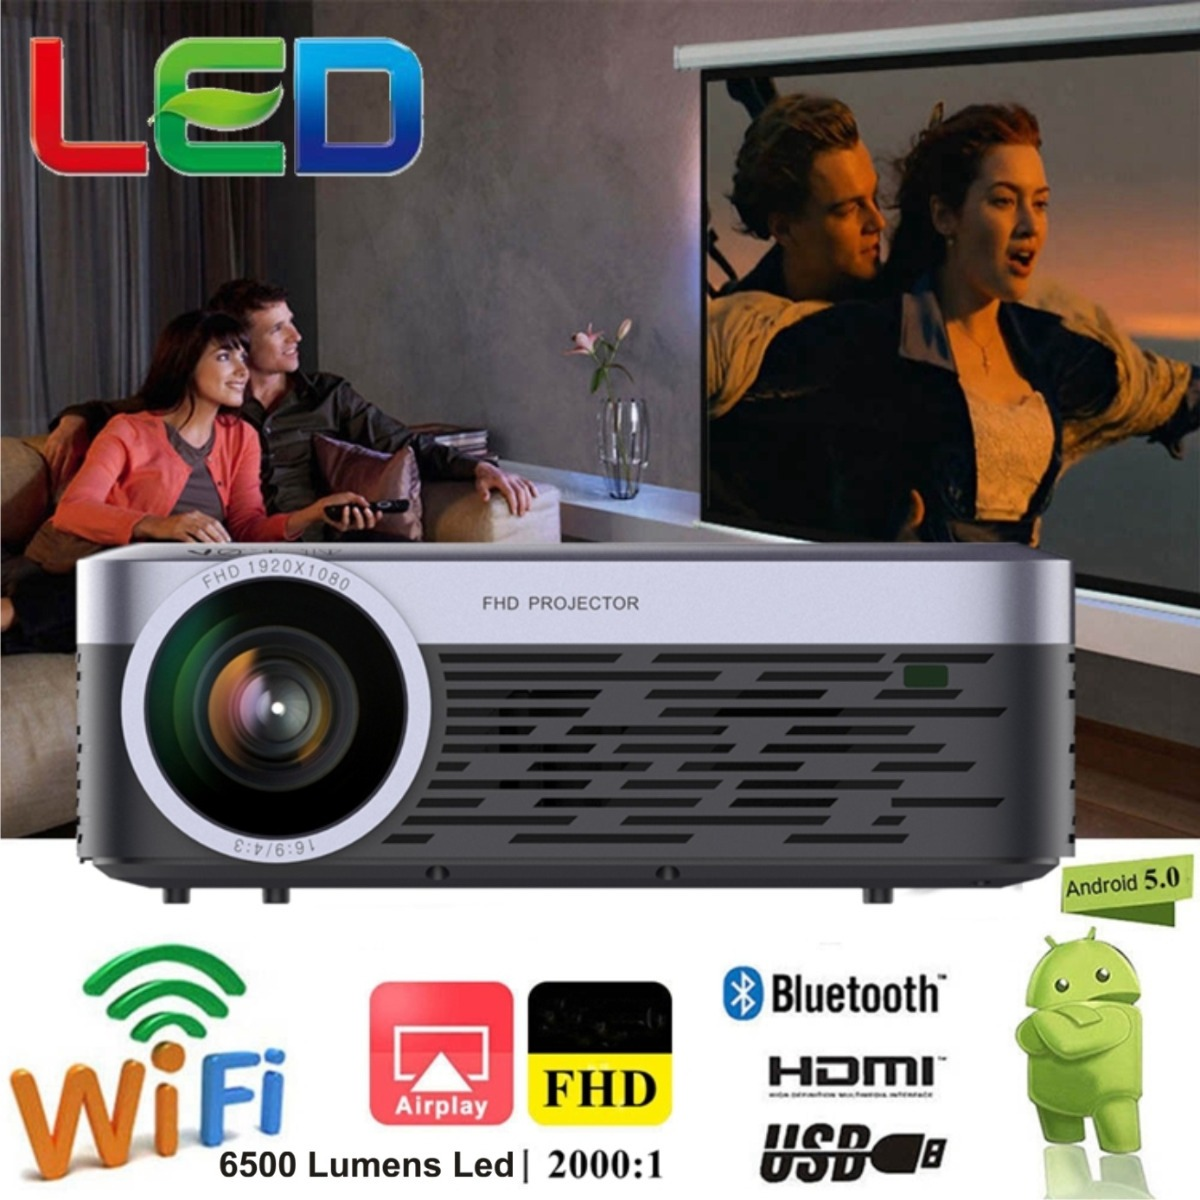 https://http2.mlstatic.com/proyector-led-6500-lumens-wifi-android-51-full-hd-nativo-D_NQ_NP_805268-MLA30991681828_062019-F.jpg